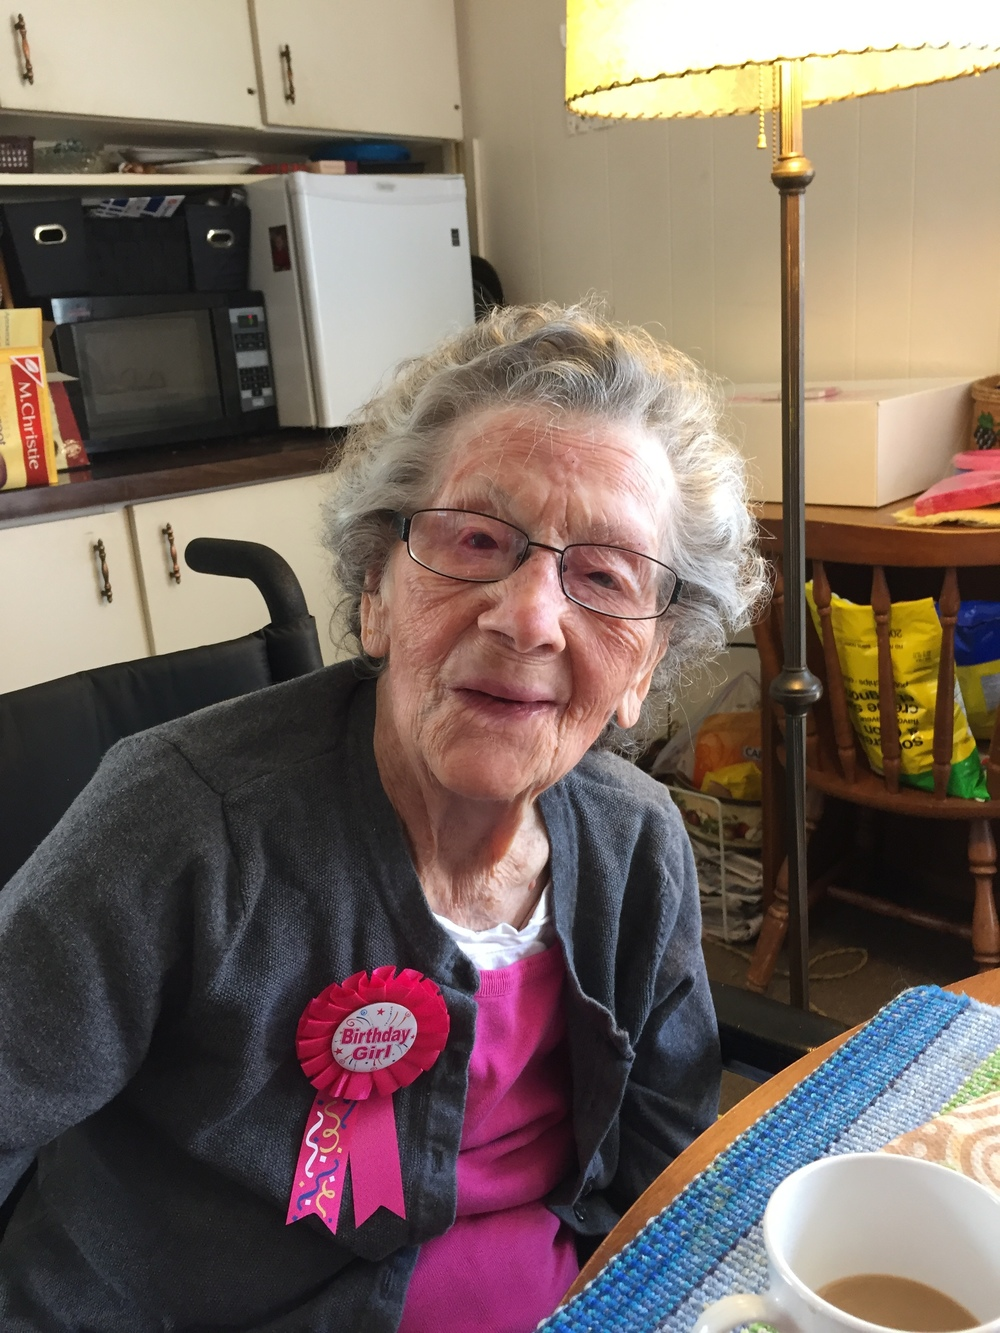 Dolly Gibb celebrating her 111th Birthday on April 26, 2016